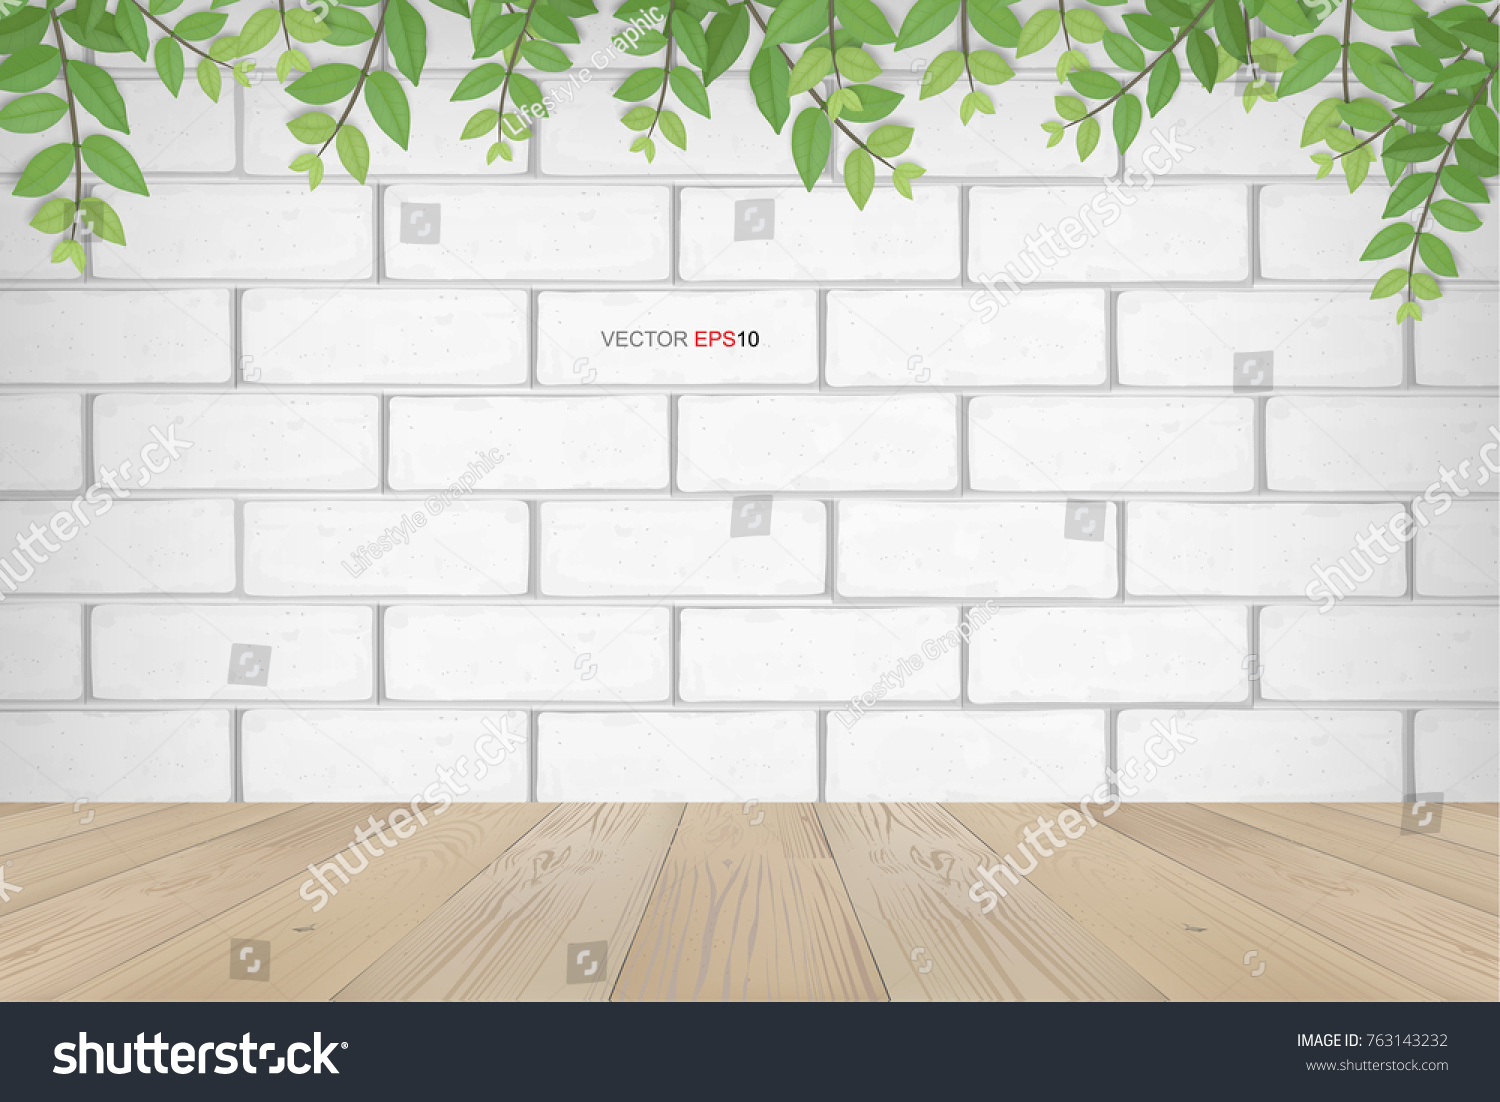 empty room space background and framing of green leaves with white brick wall and wooden floor